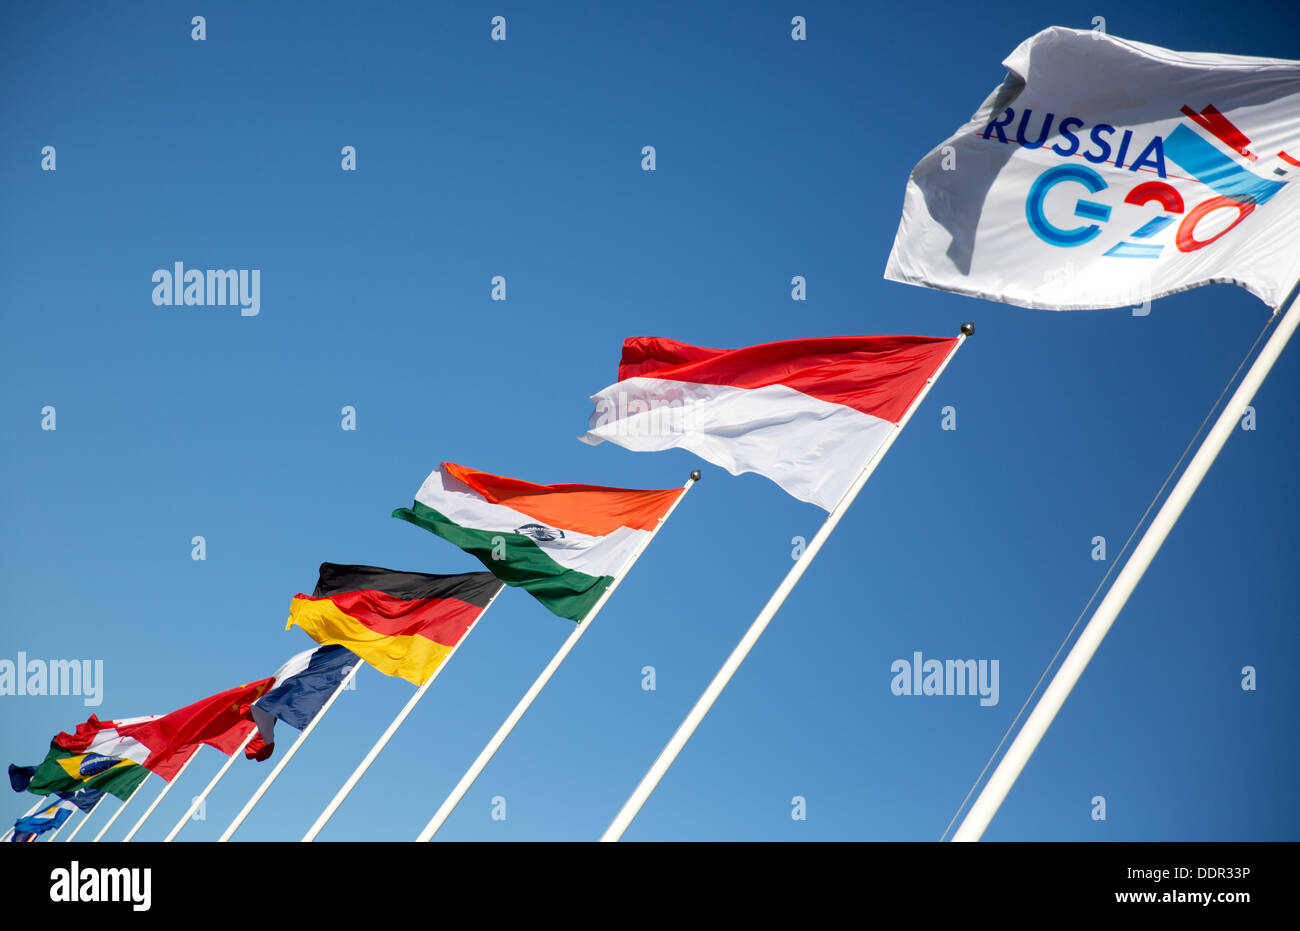 St. Petersburg, Russia. 06th Sep, 2013. Flags of G20 states are pictured at the G20 summit. The G20 summit takes Stock Photo